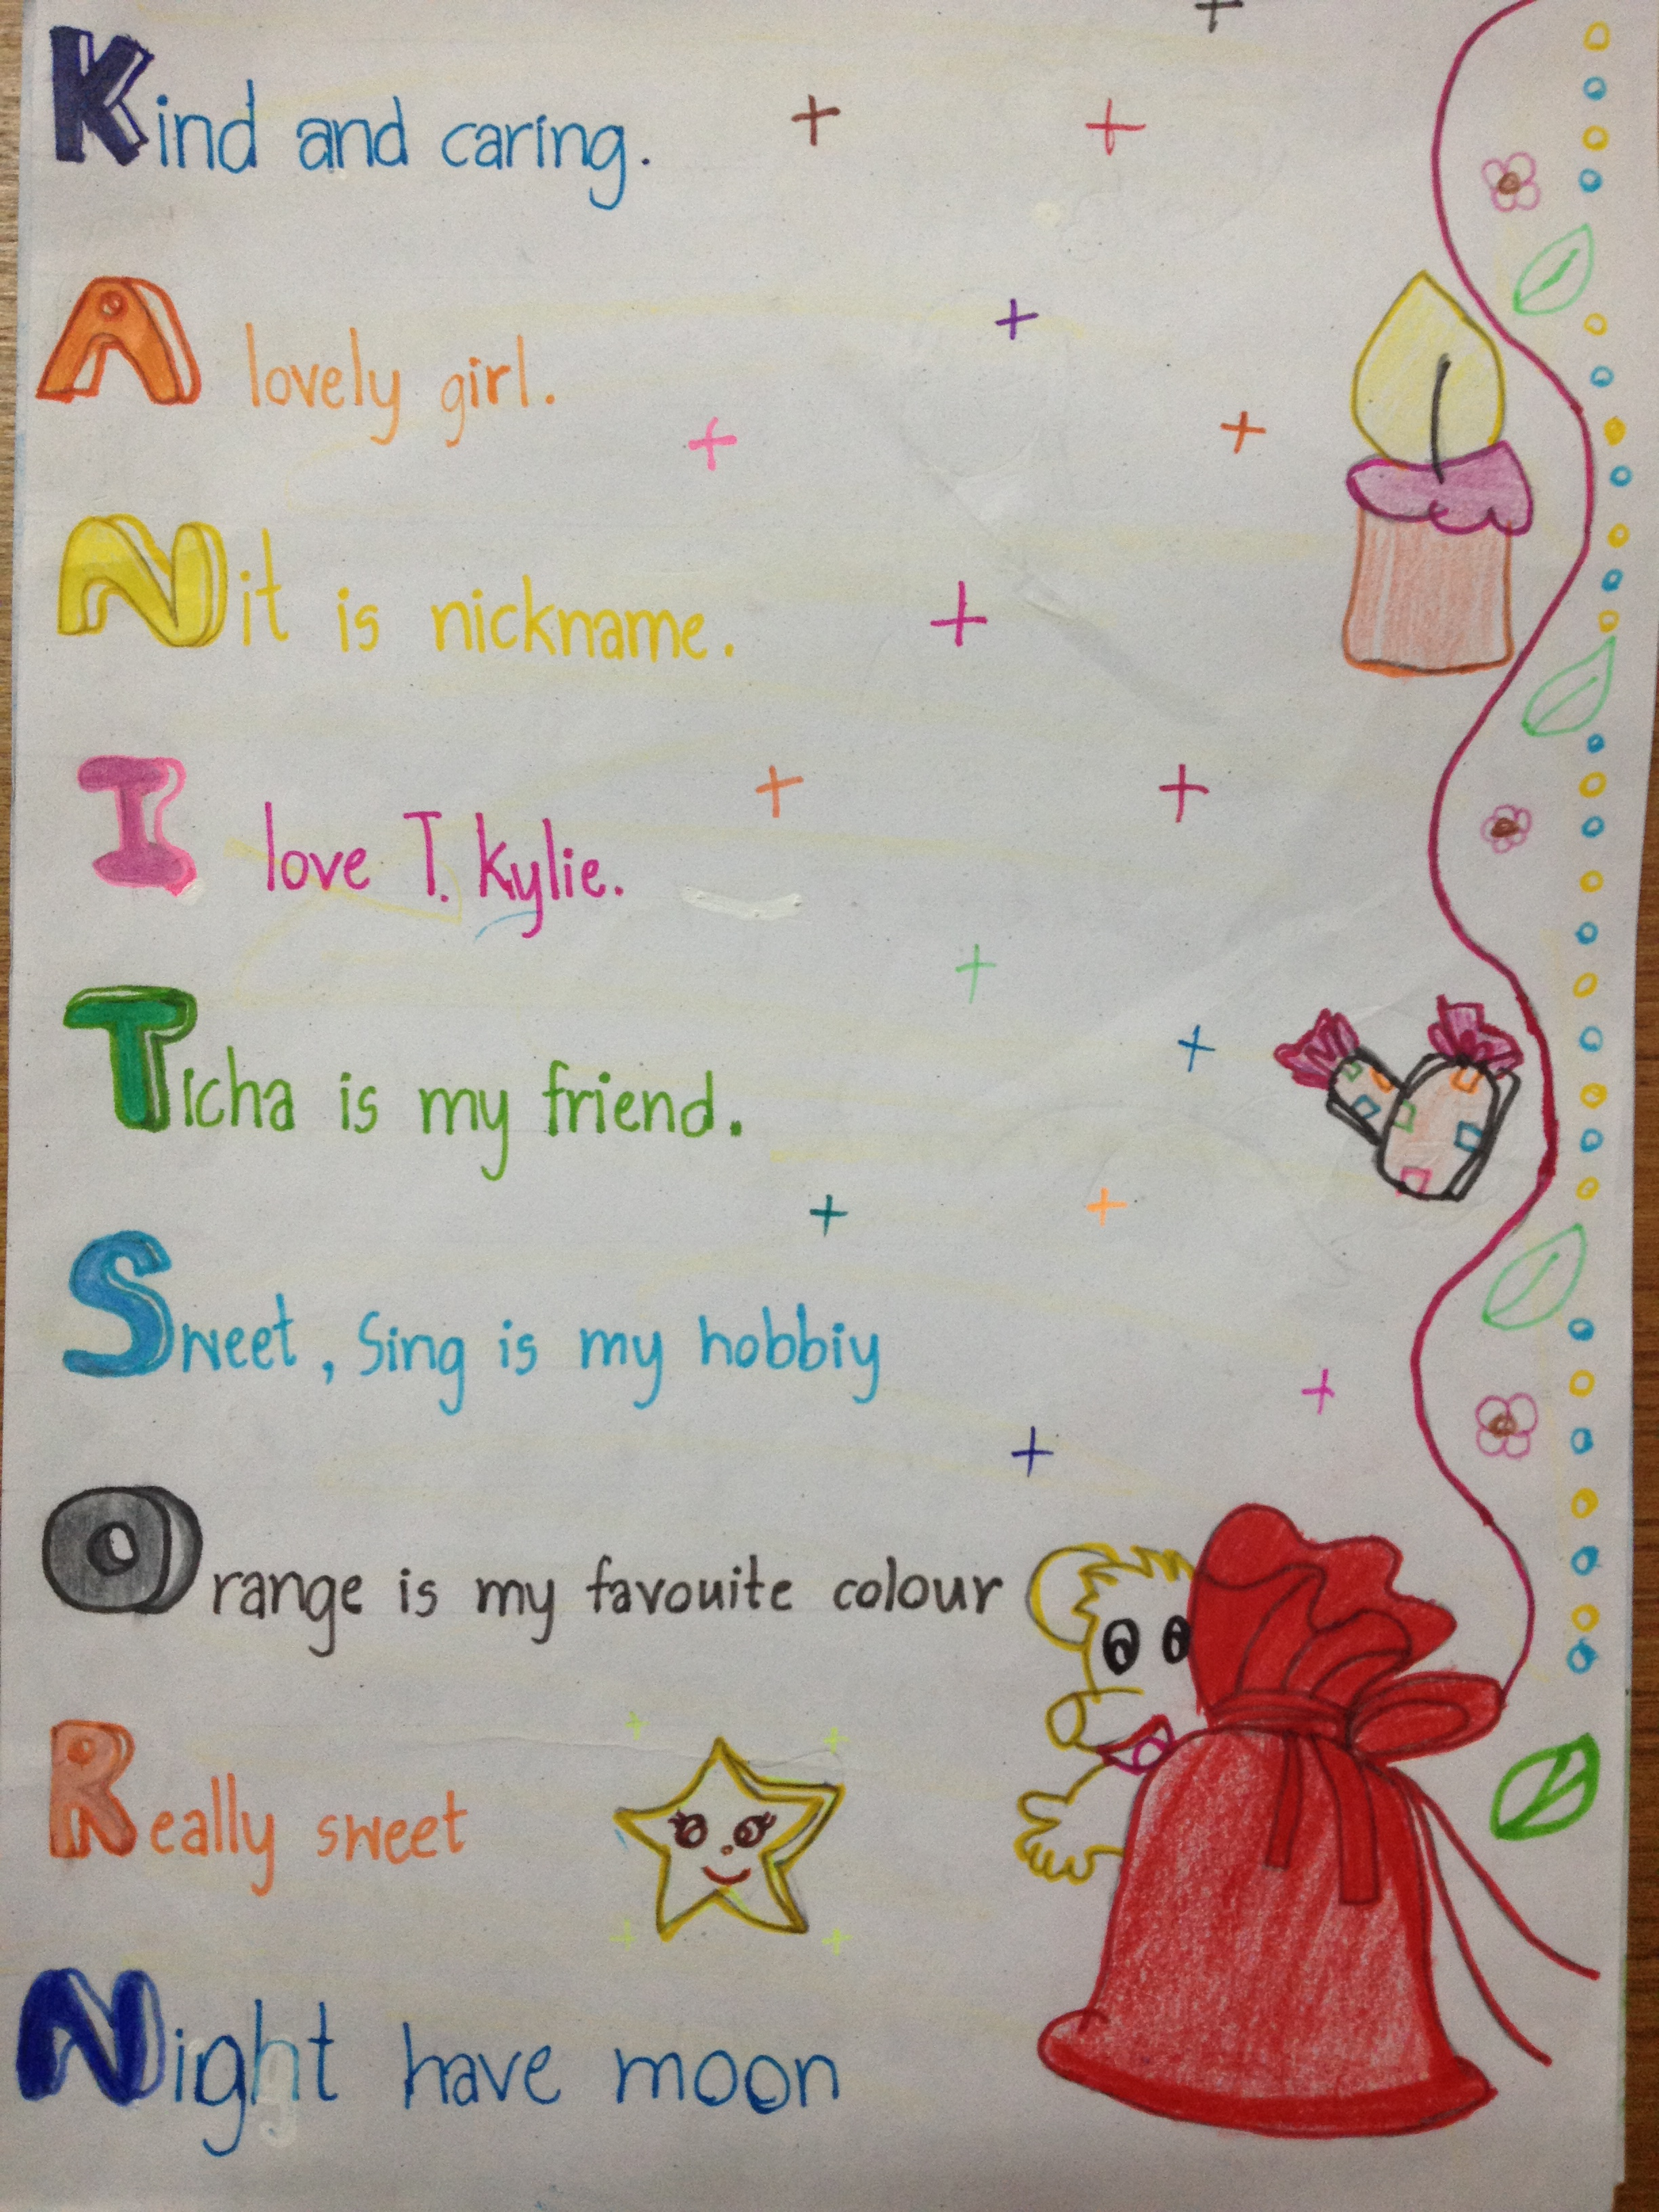 73 Acrostic Poems - Examples and Definition of Acrostic Poems   Acrostic Poems With The Name Terri